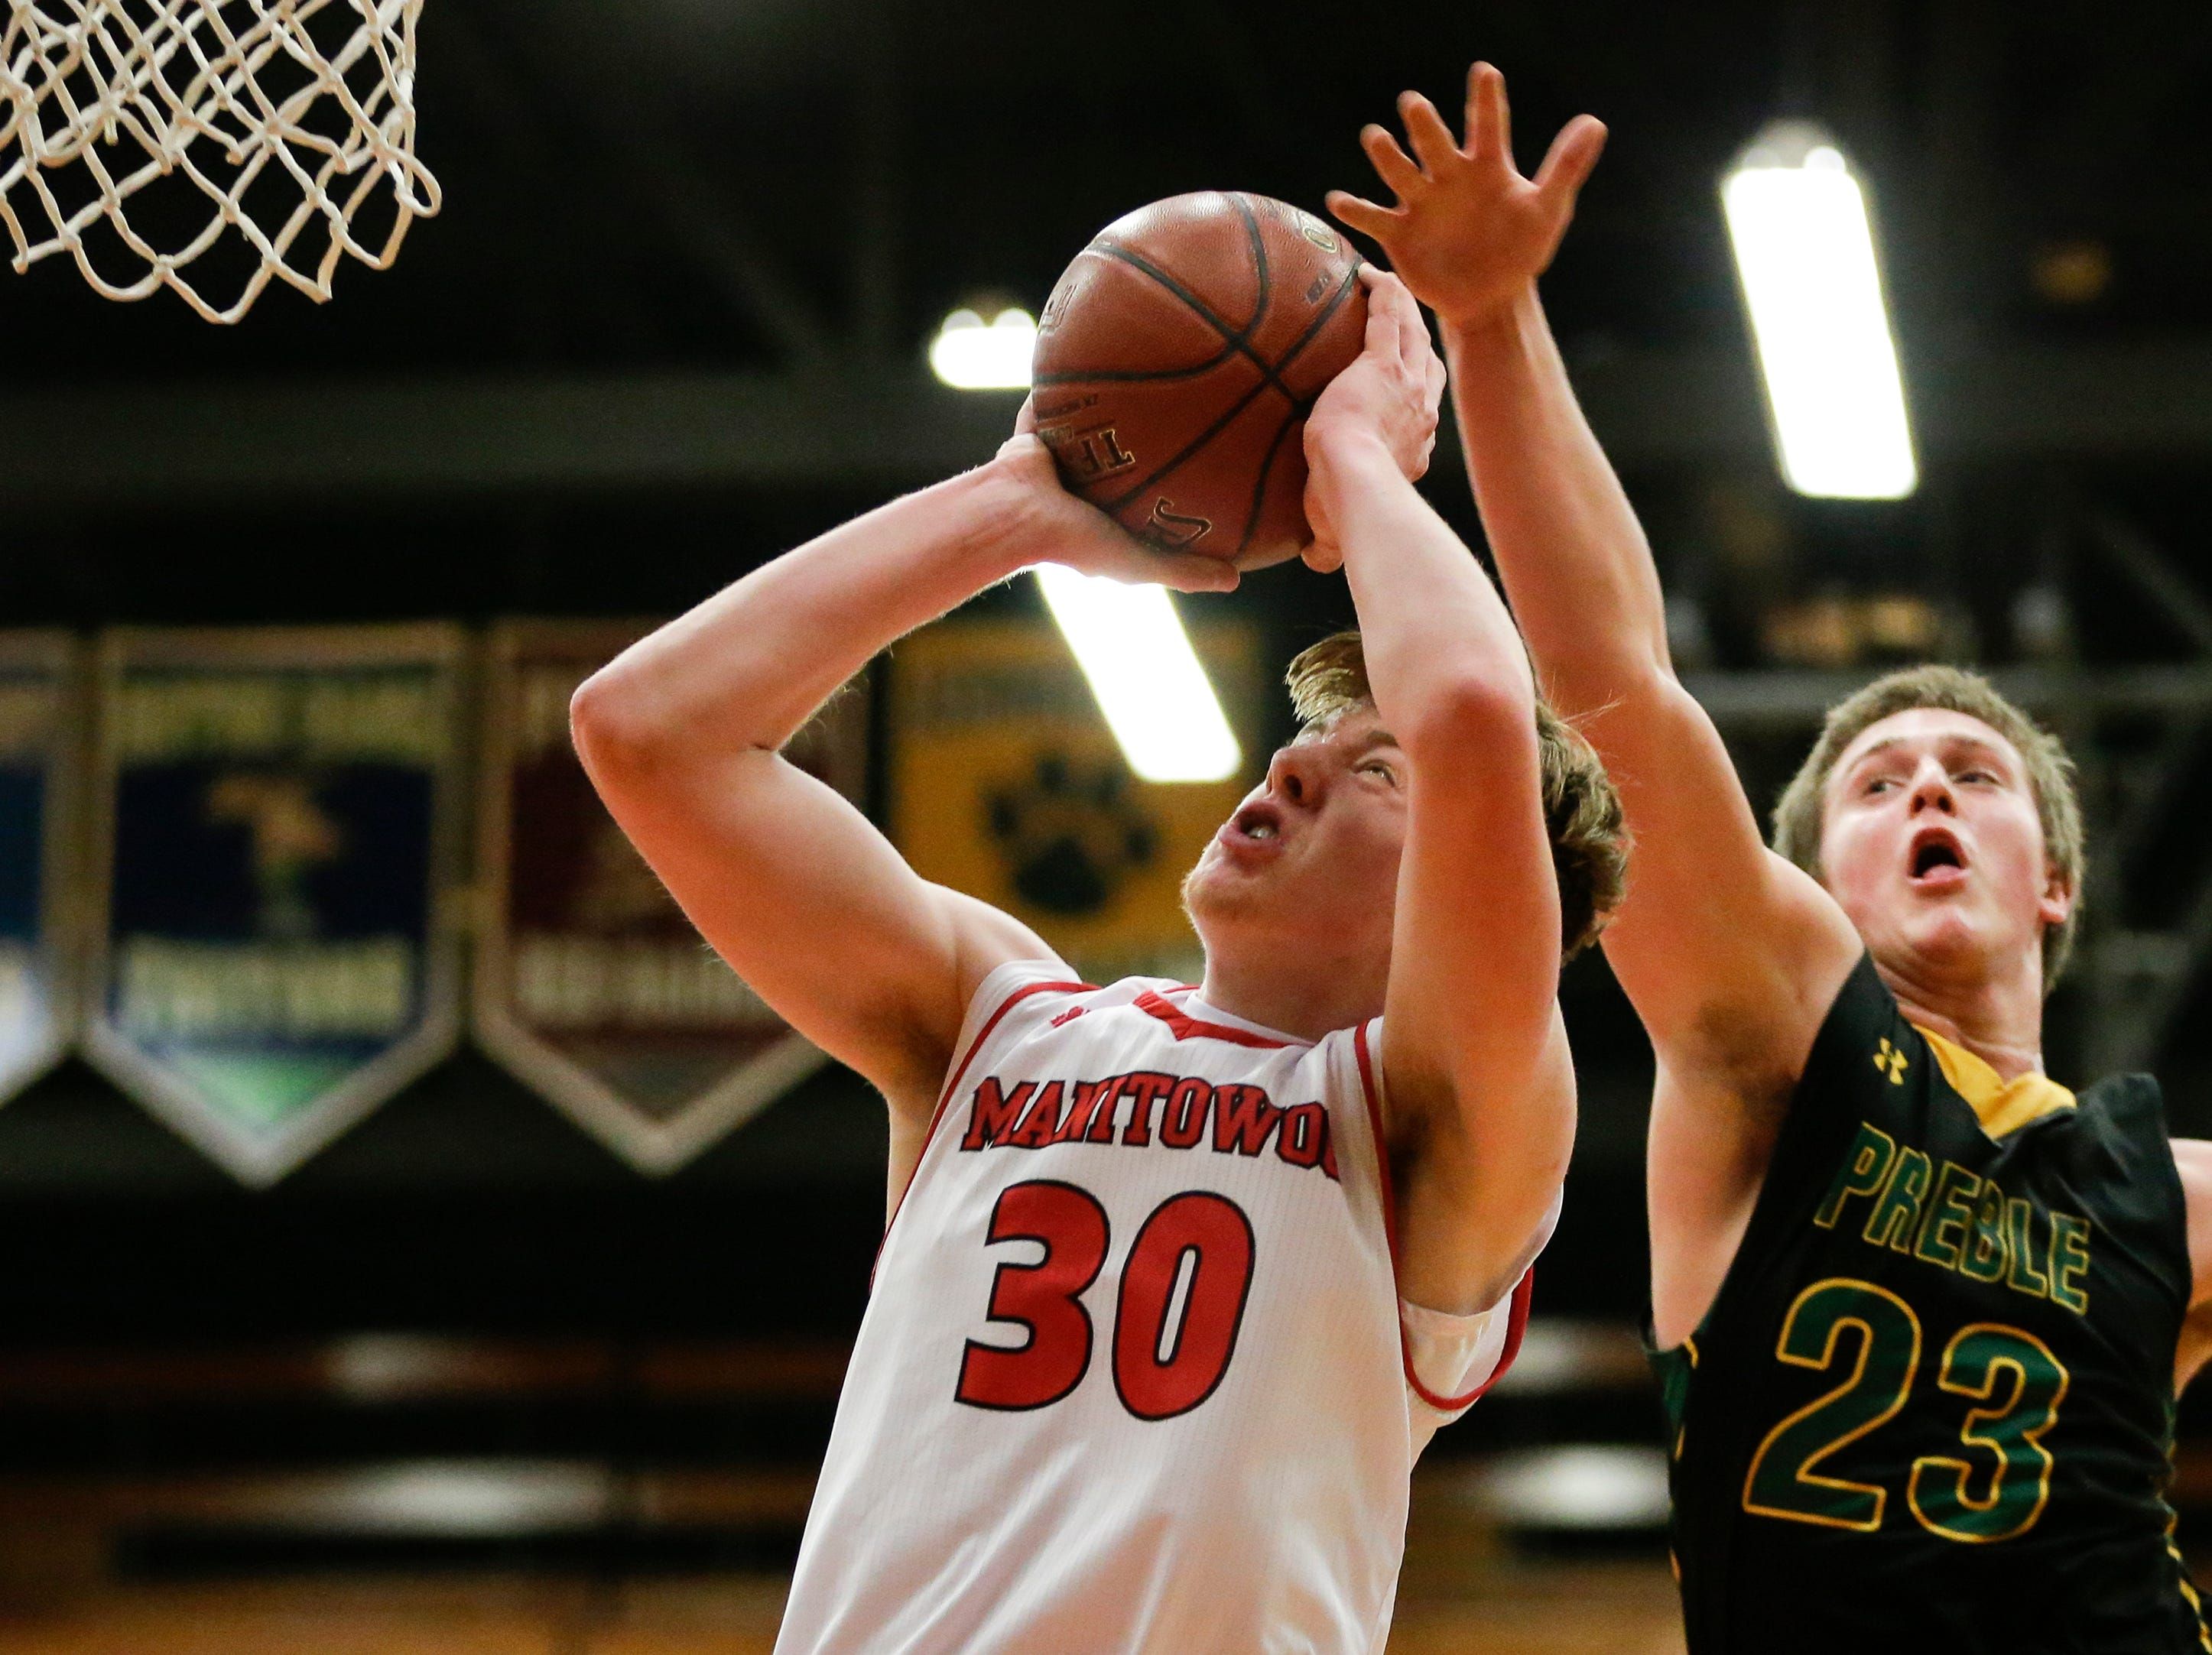 Manitowoc Lincoln's Alec Messman shoots against Green Bay Preble during boys FRCC basketball at Manitowoc Lincoln High School Friday, December 21, 2018, in Manitowoc, Wis. Joshua Clark/USA TODAY NETWORK-Wisconsin